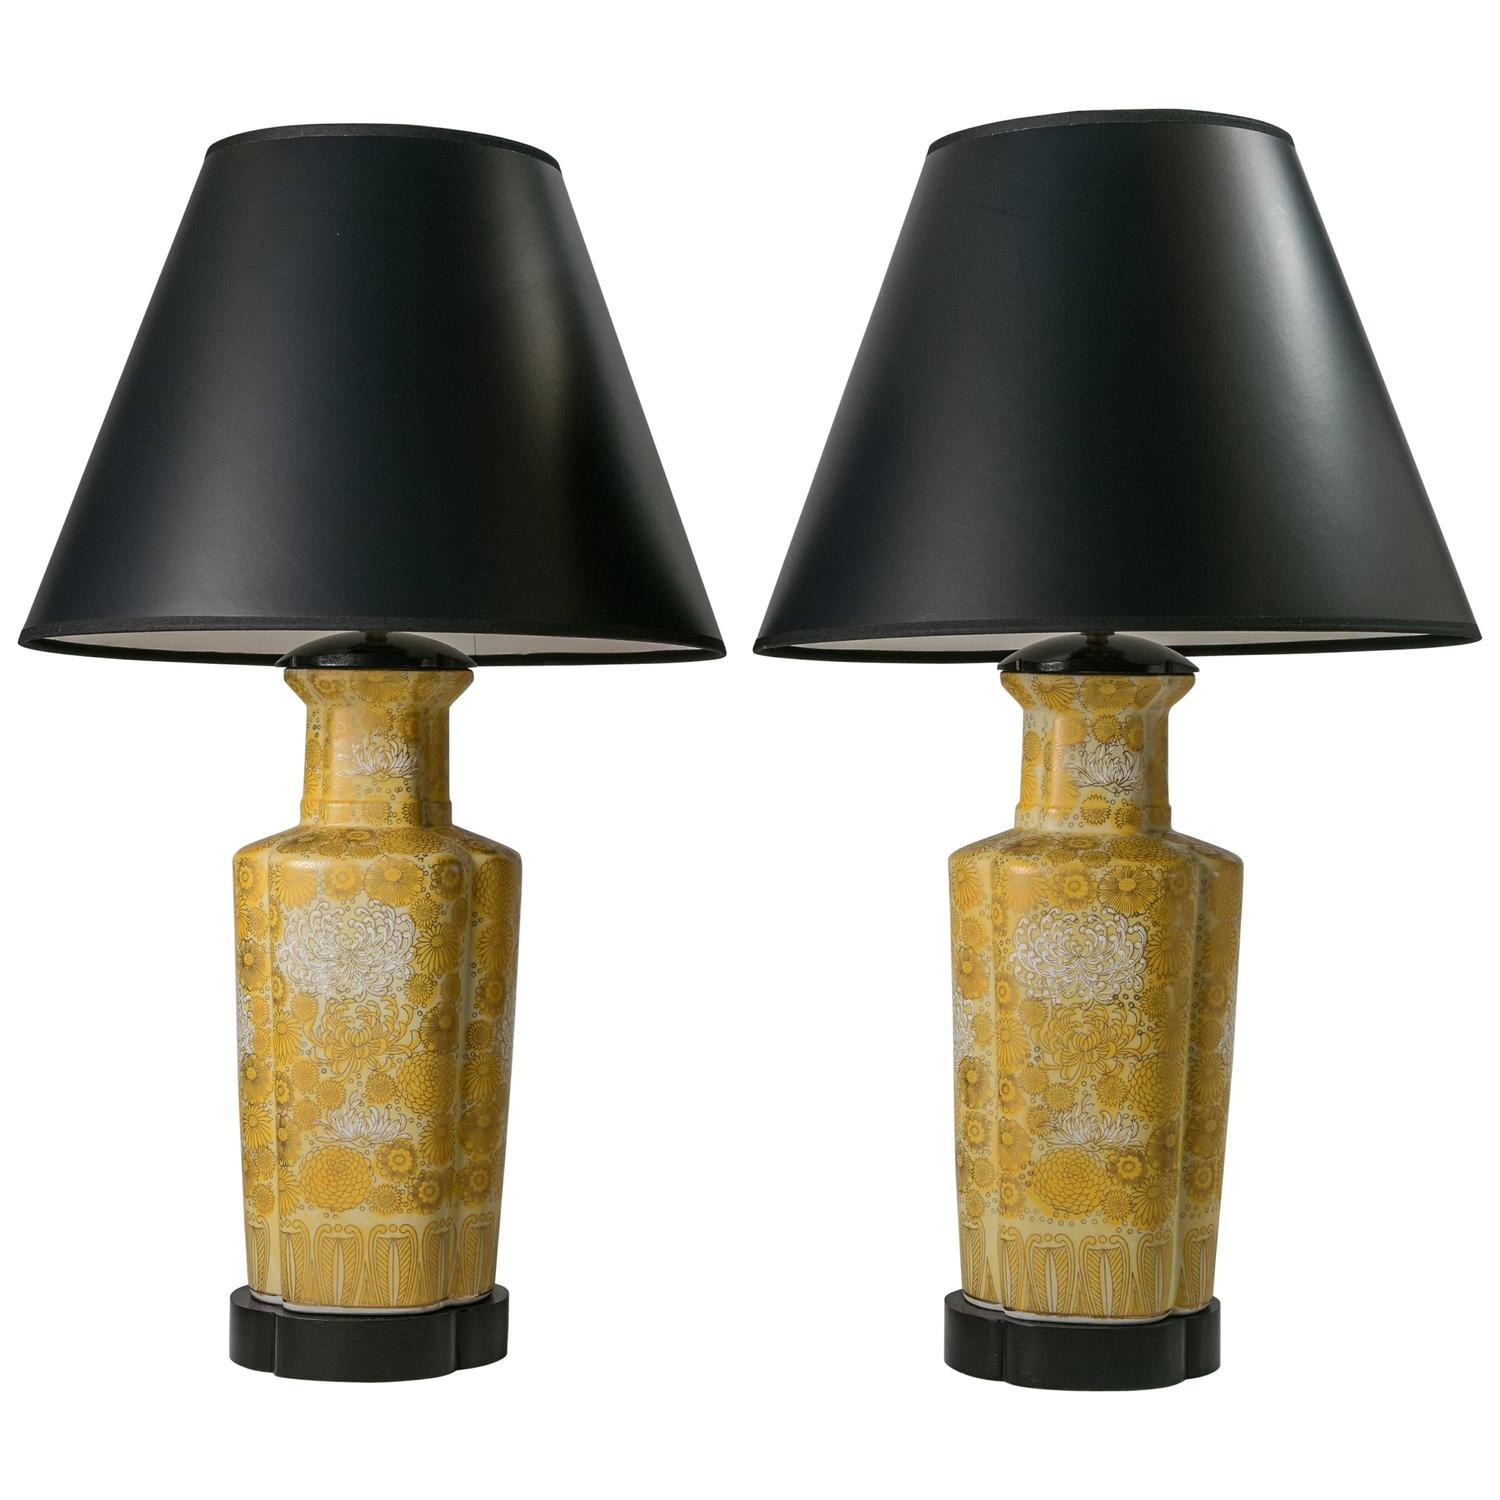 Chinoiserie lighting light fixtures 214 for sale at 1stdibs chinoiserie table lamps 1960s pair arubaitofo Choice Image